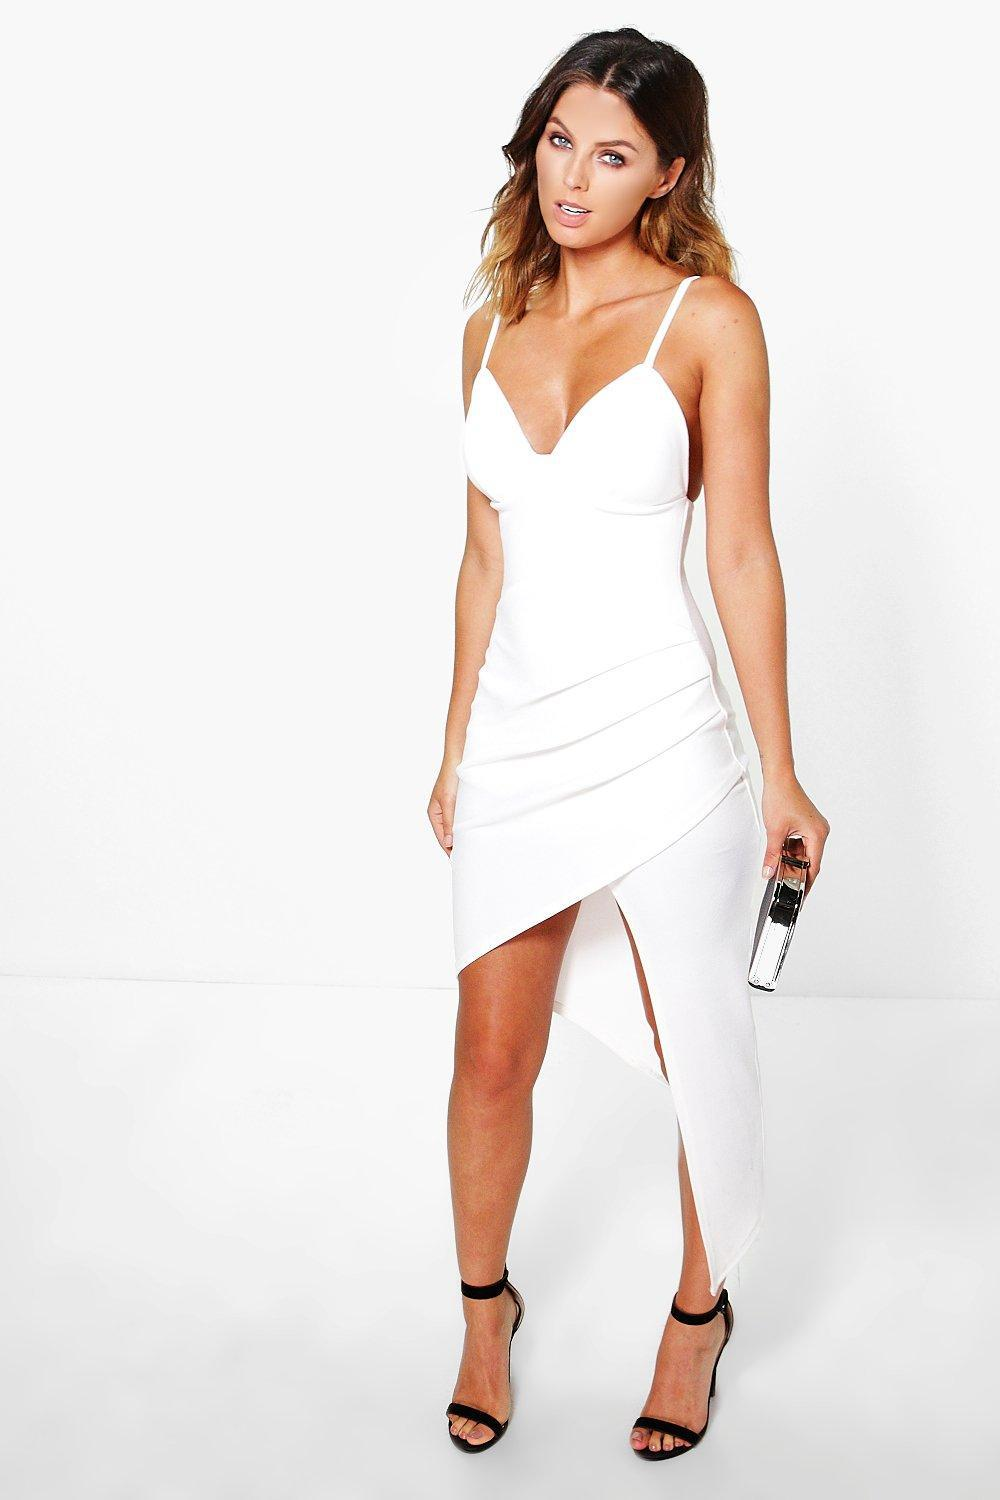 36008457c12d Gallery. Previously sold at: Boohoo · Women's Slip Dresses ...